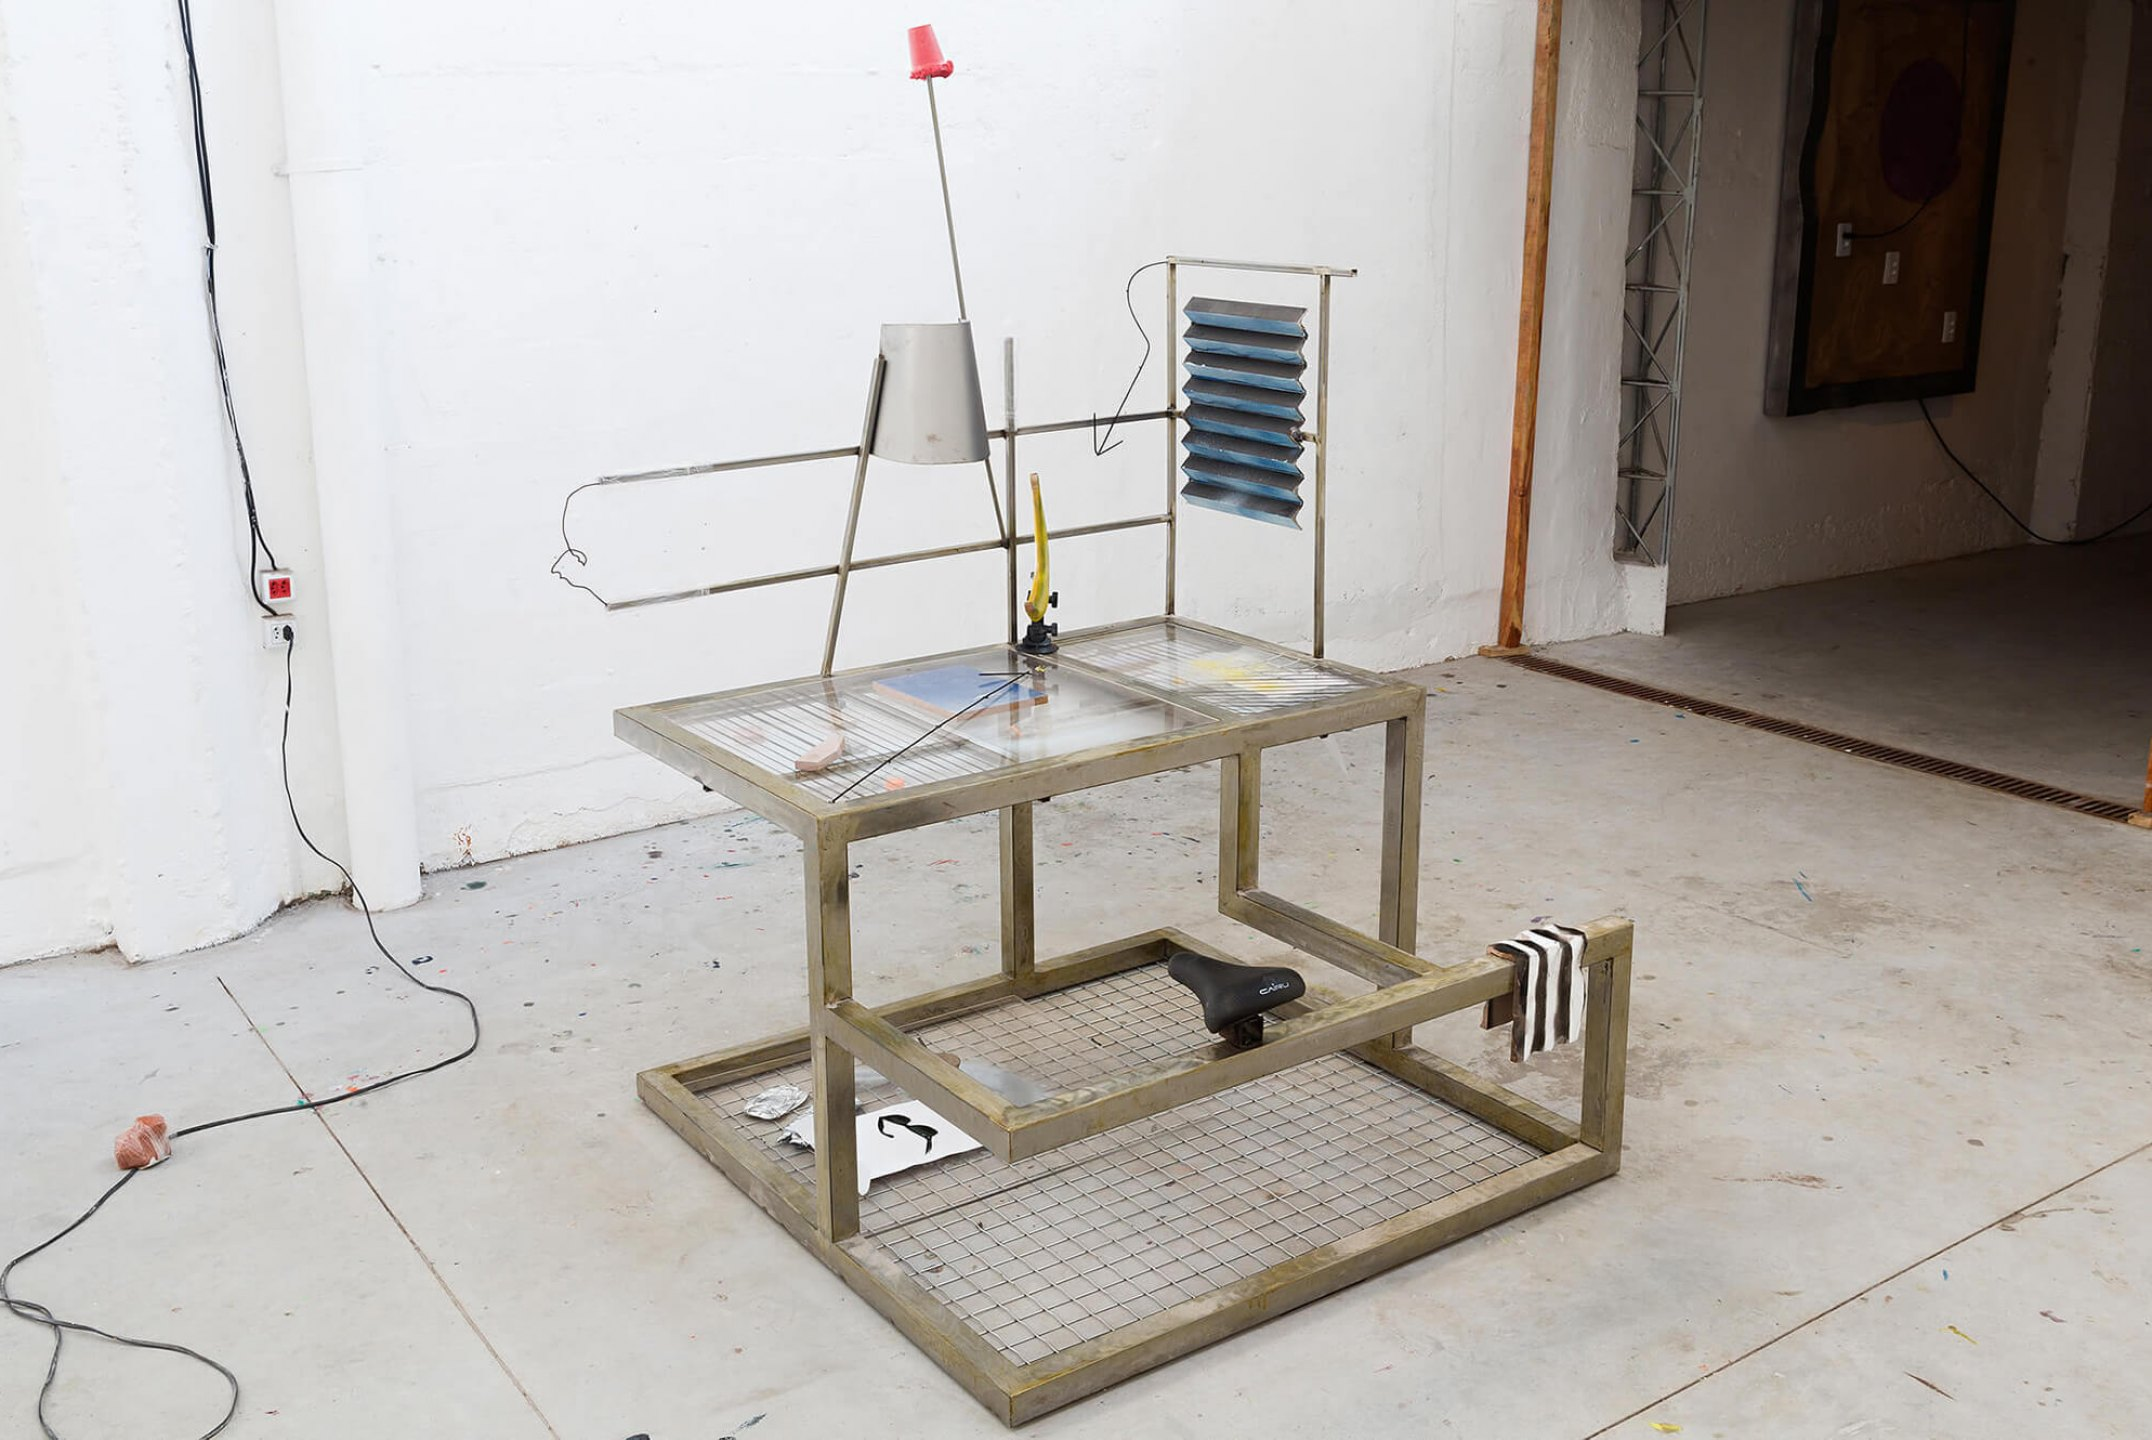 Neïl Beloufa, <em>Desk, trust and control, health, from inside, a beautiful sky</em>, 2014, acrylic, iron and steel, aluminum, photographic print, foam and leather, polyurethane, concrete, wood, plastic, acrylic paint, 192 × 125 × 125 cm - Mendes Wood DM